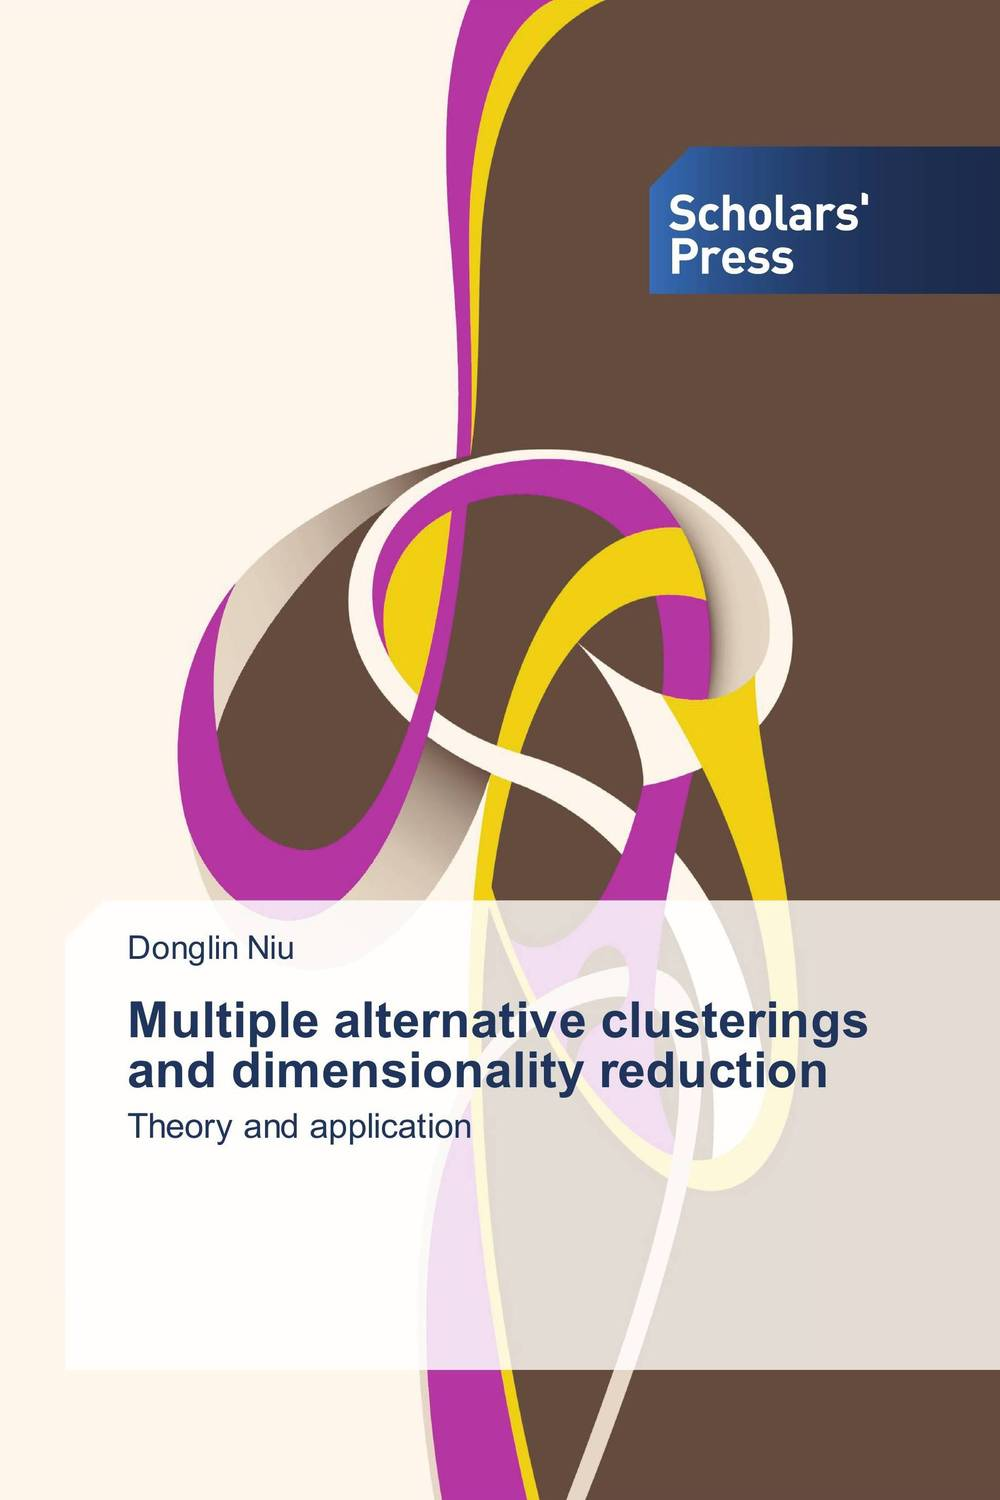 Multiple alternative clusterings and dimensionality reduction clustering and optimization based image segmentation techniques